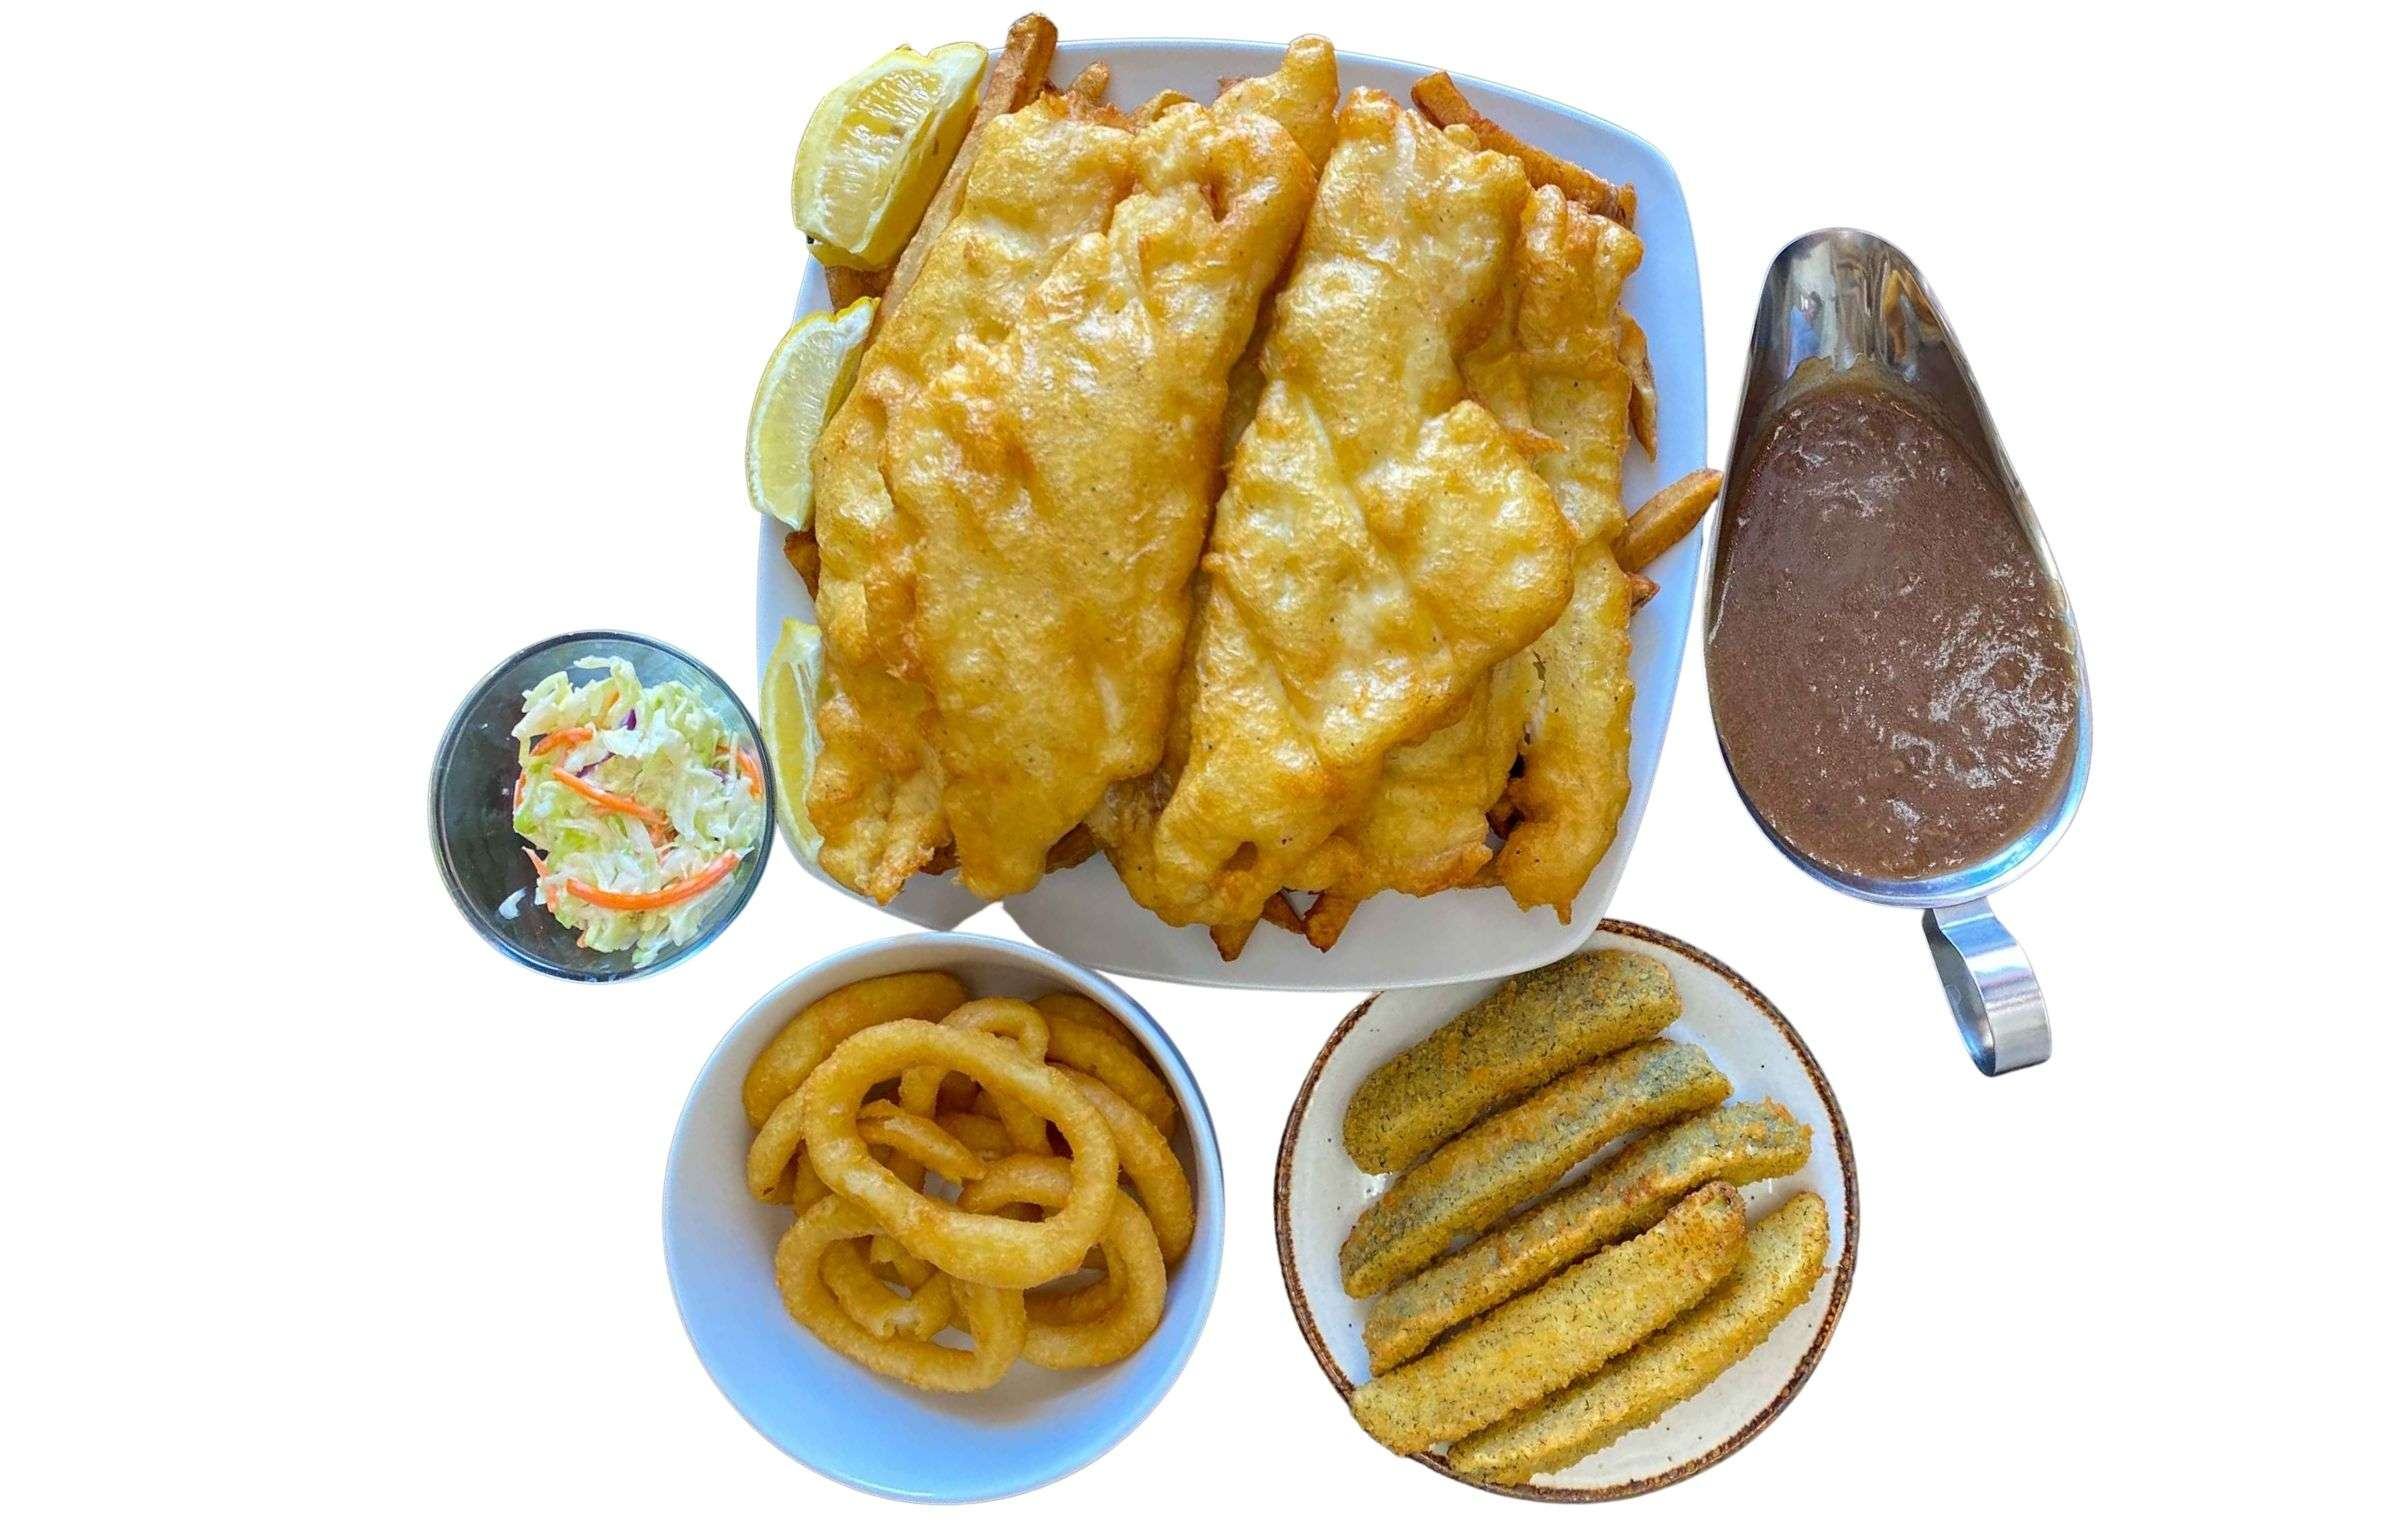 Combo Meals #2